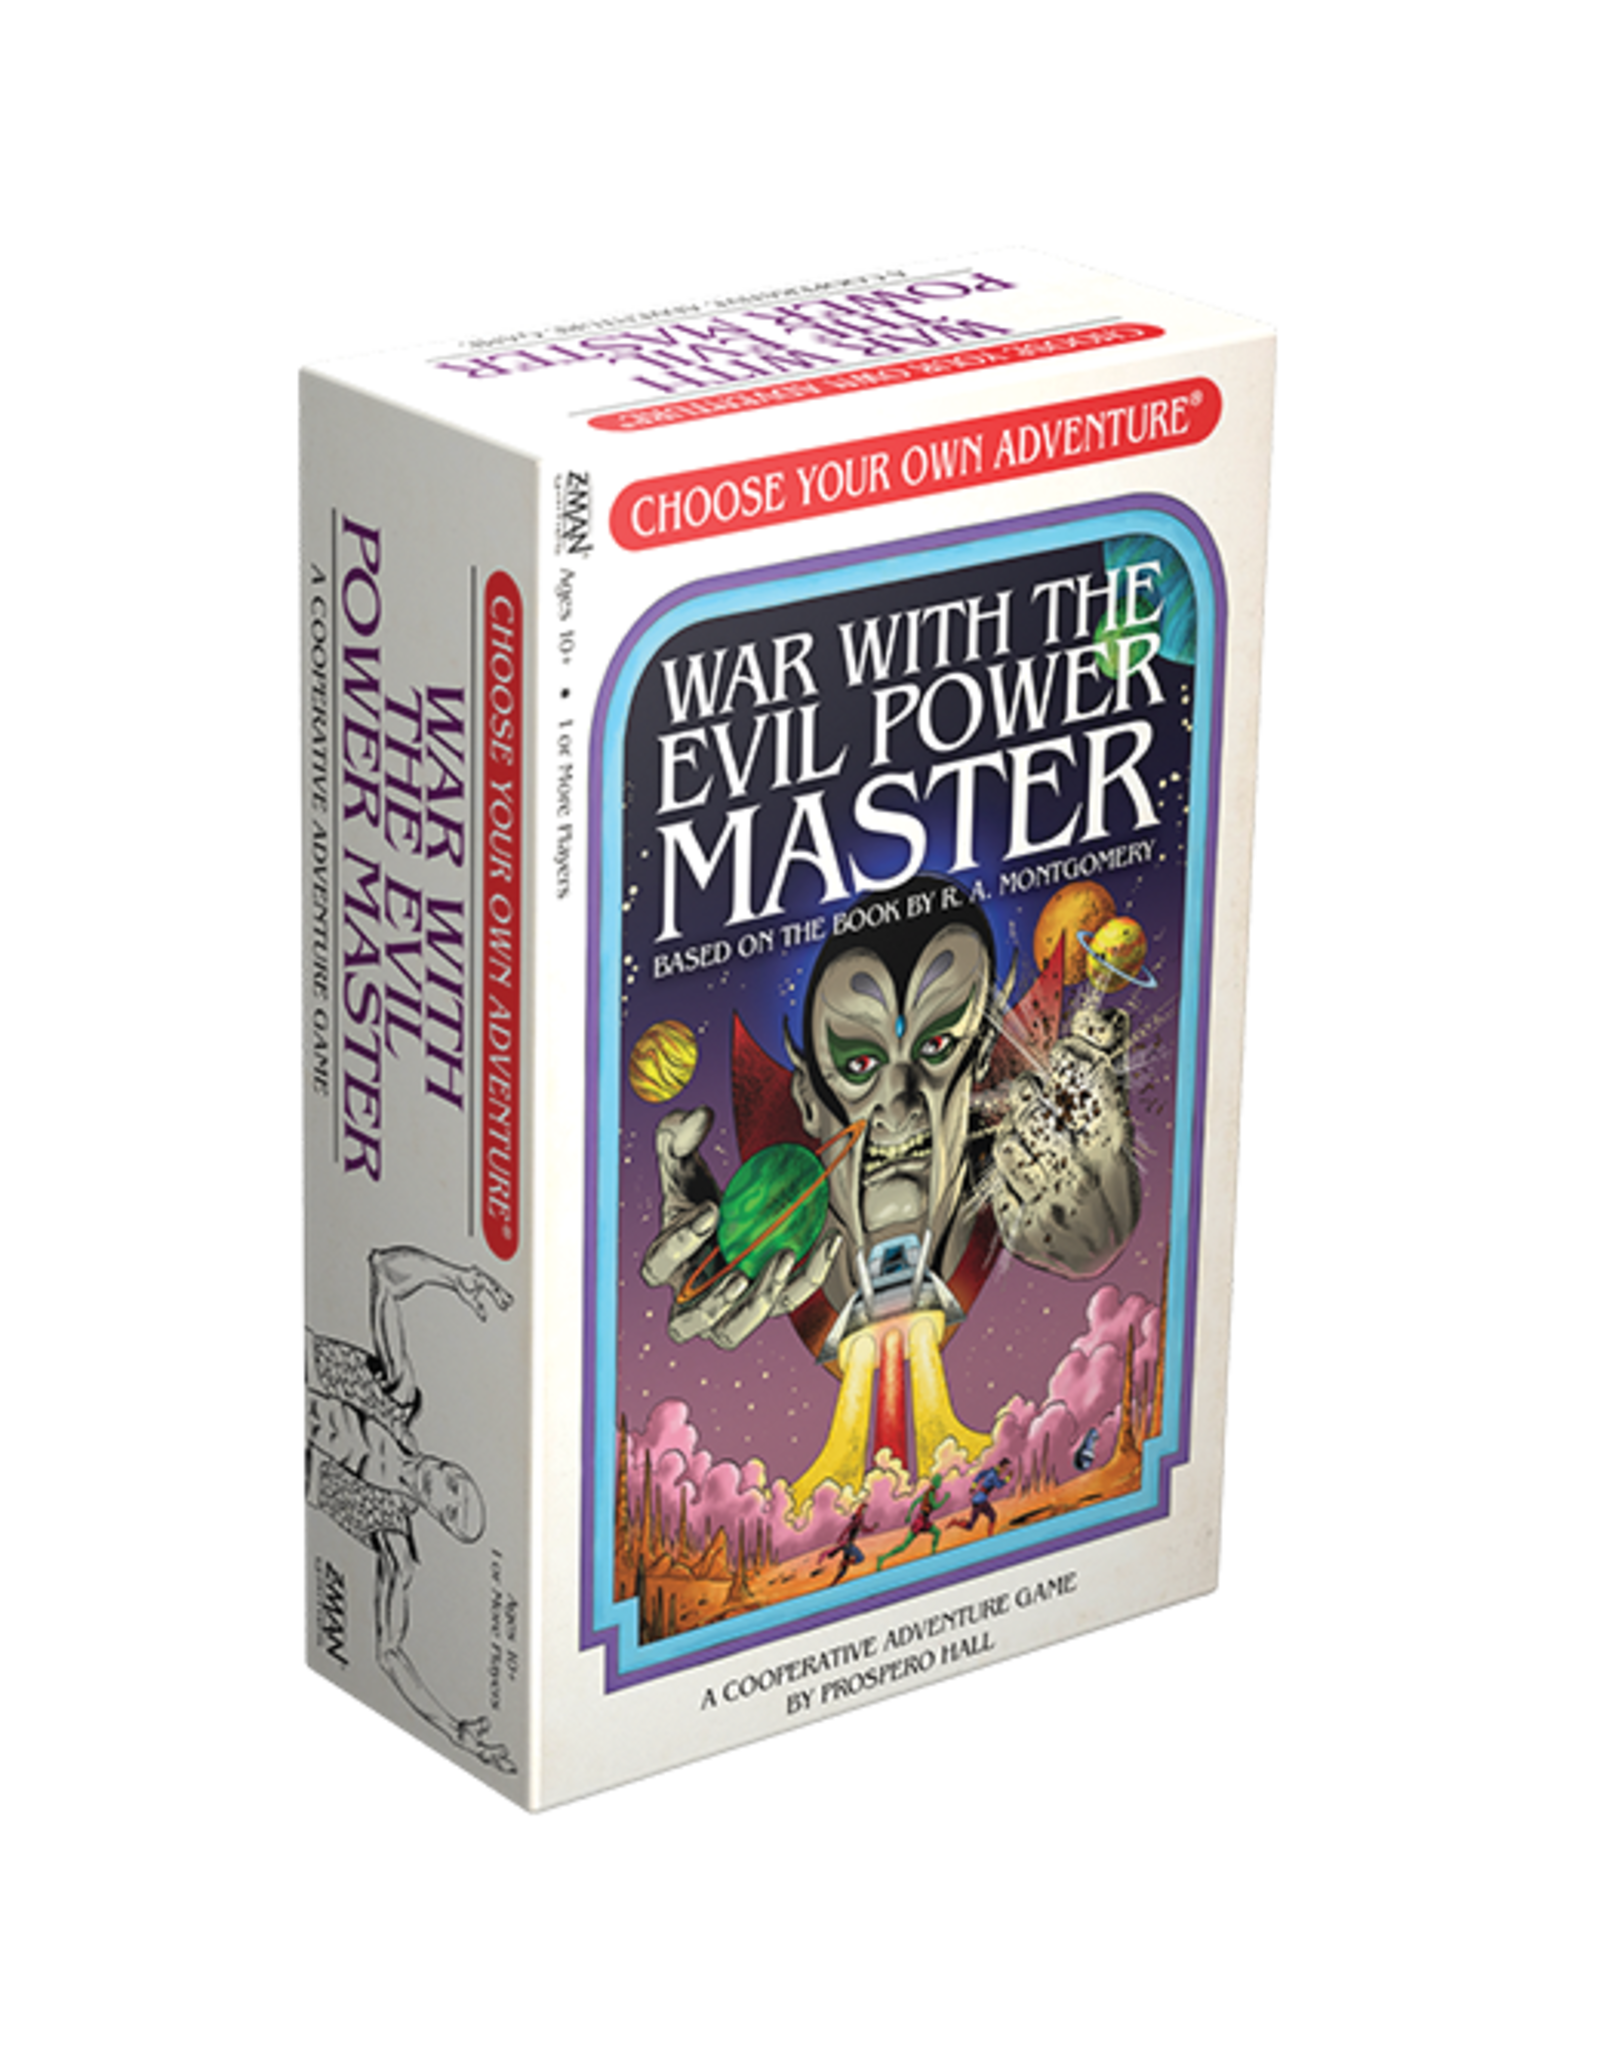 zman games Choose Your Own Adventure: War with the Evil Power Master